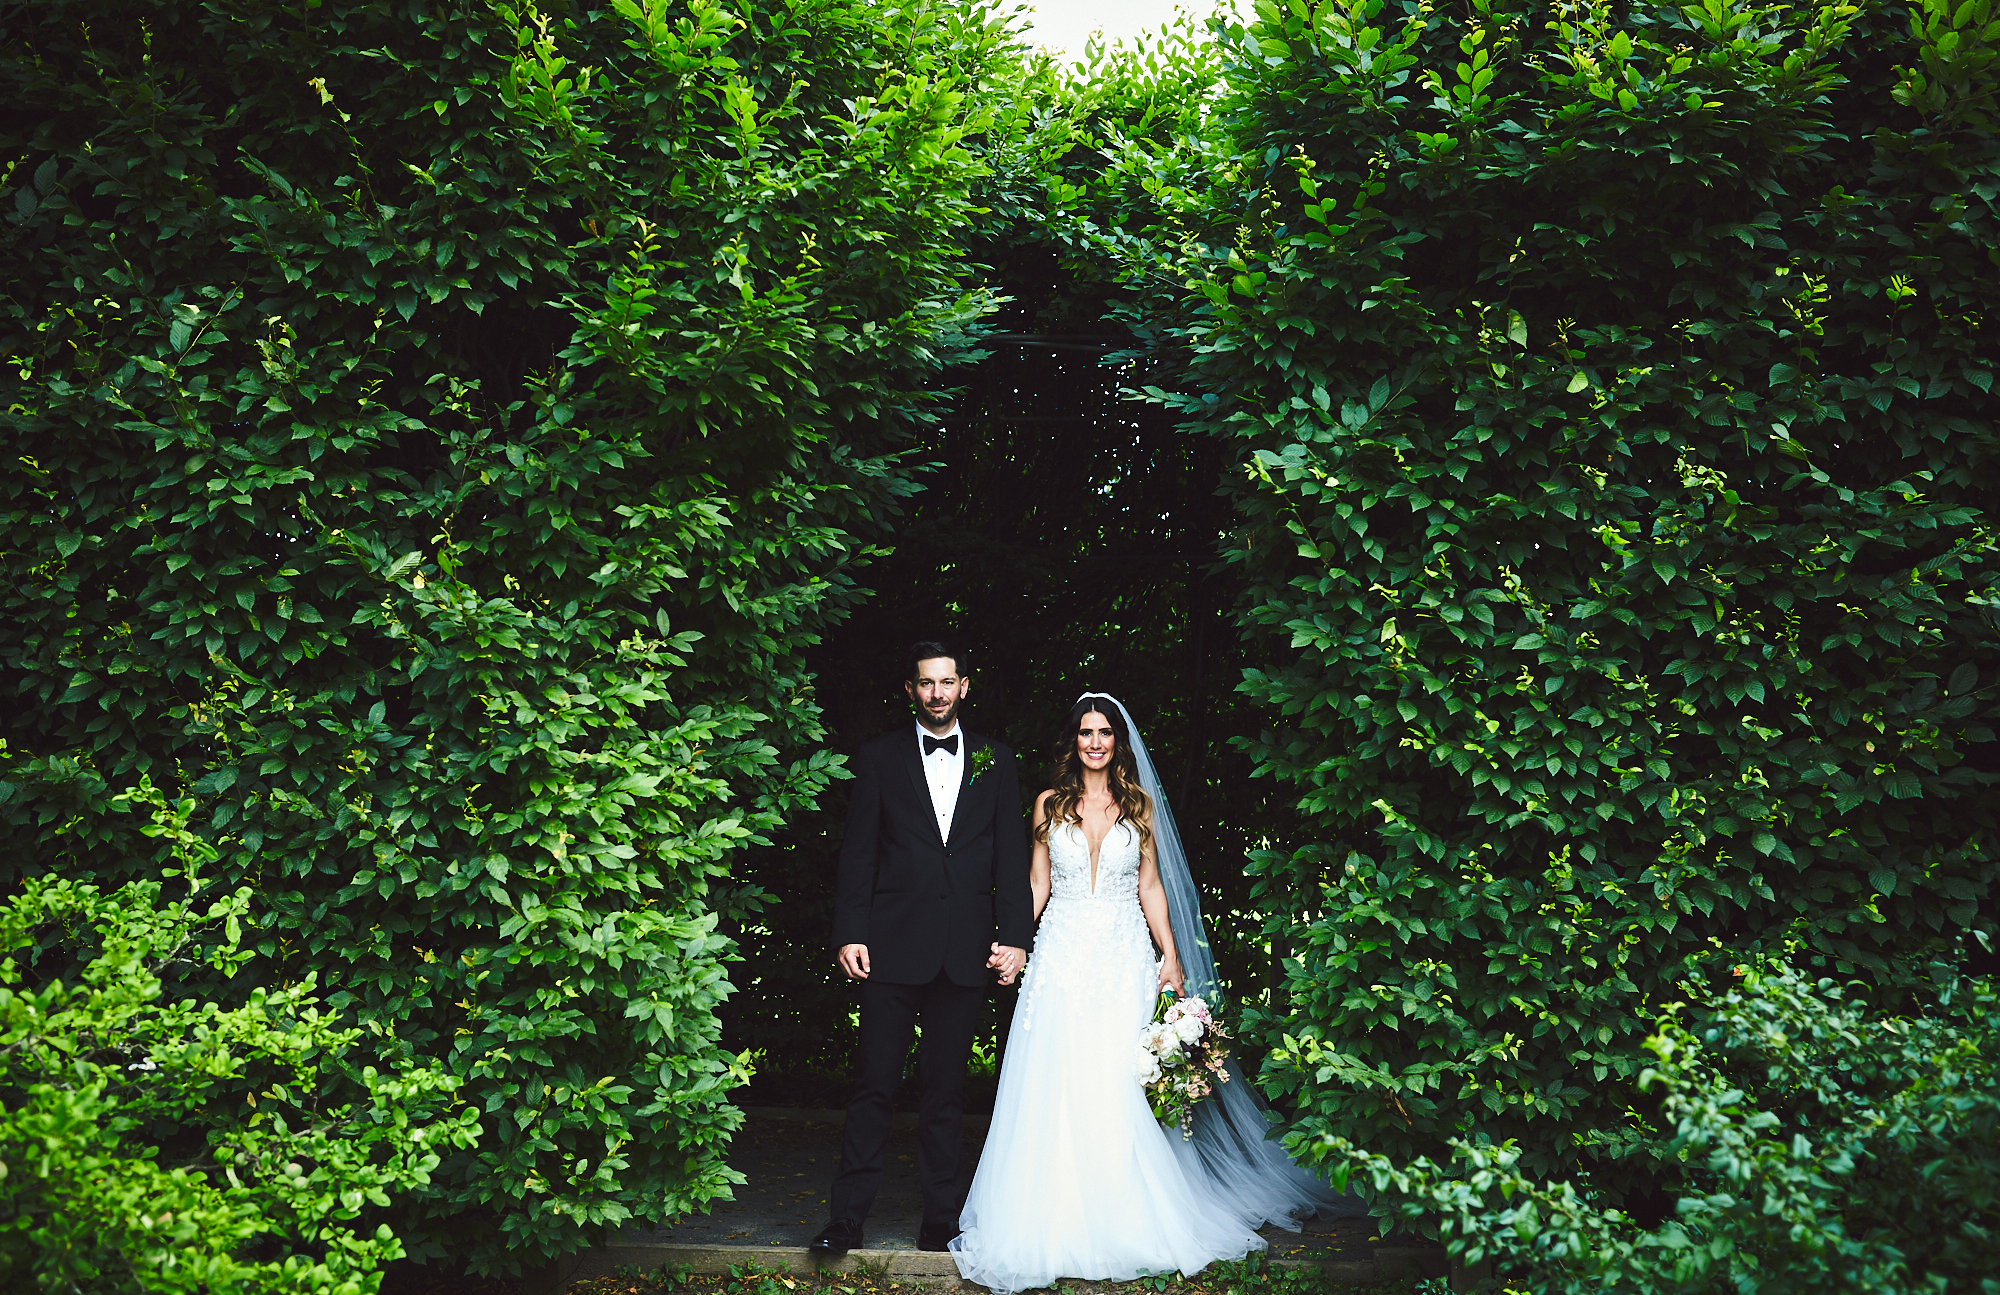 190628_SummerStatenIslandWeddingPhotography_By_BriJohnsonWeddings_0096.jpg